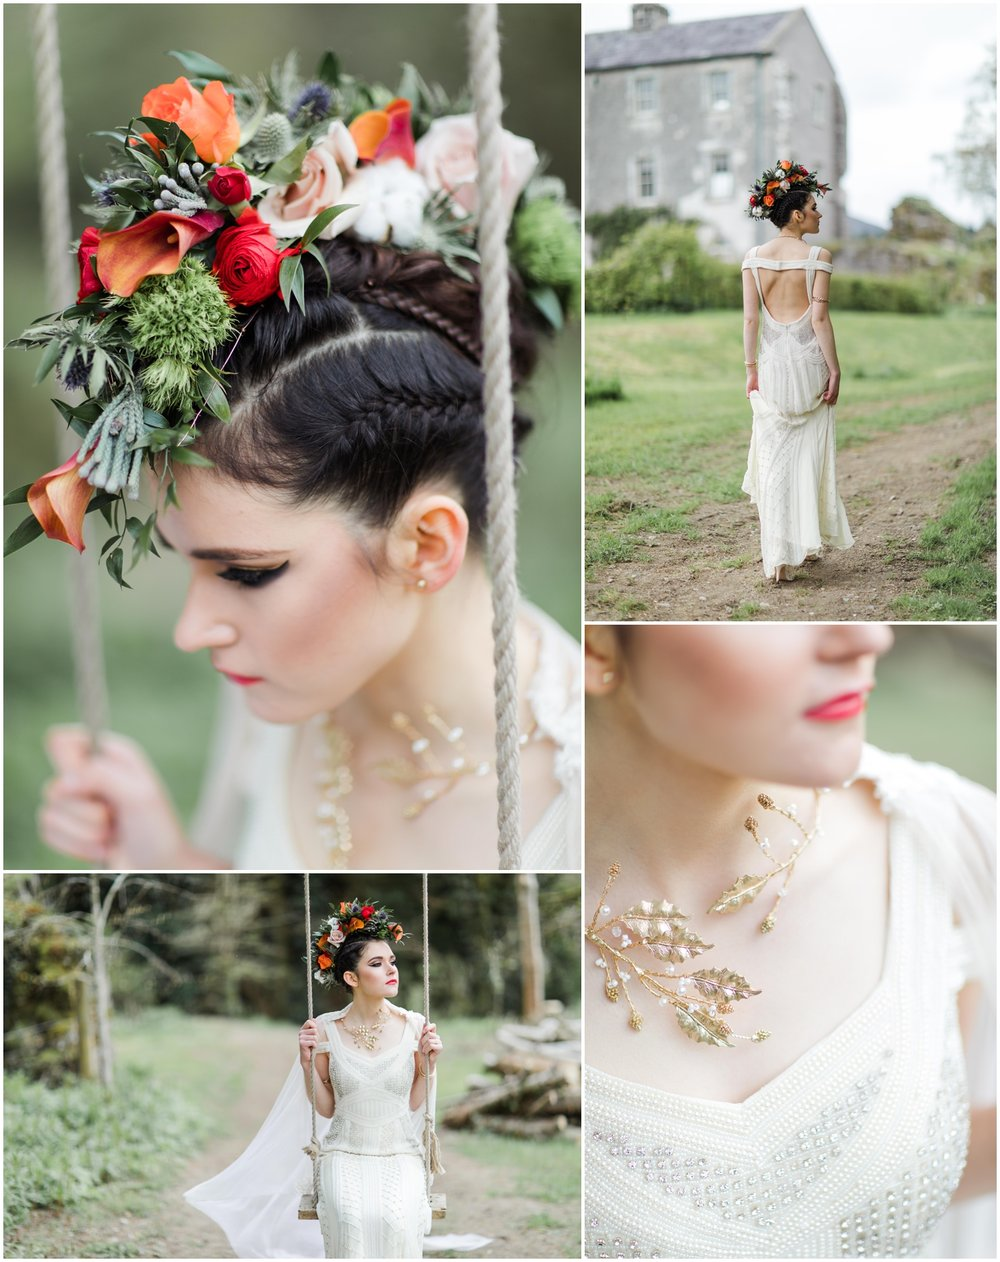 Image Credits    Photography:   Katya Koliban Photography   |   Styling:   Blaithin O'Reilly Murphy at TheWeddingExpert.ie   |   Dress:   Que Va by Caoimhe Keane   |   Make Up:   efcreativestudios.com   |  Hair:   bridalhairandmakeup.ie   |   Jewellery:   veronicaroden.ie      |    Flowers:   weddingflowersbyjosephine.ie   |    Accessories:  Jenny Vanders  |   Location:   Aghavannagh Barracks      |    Model:   Julija